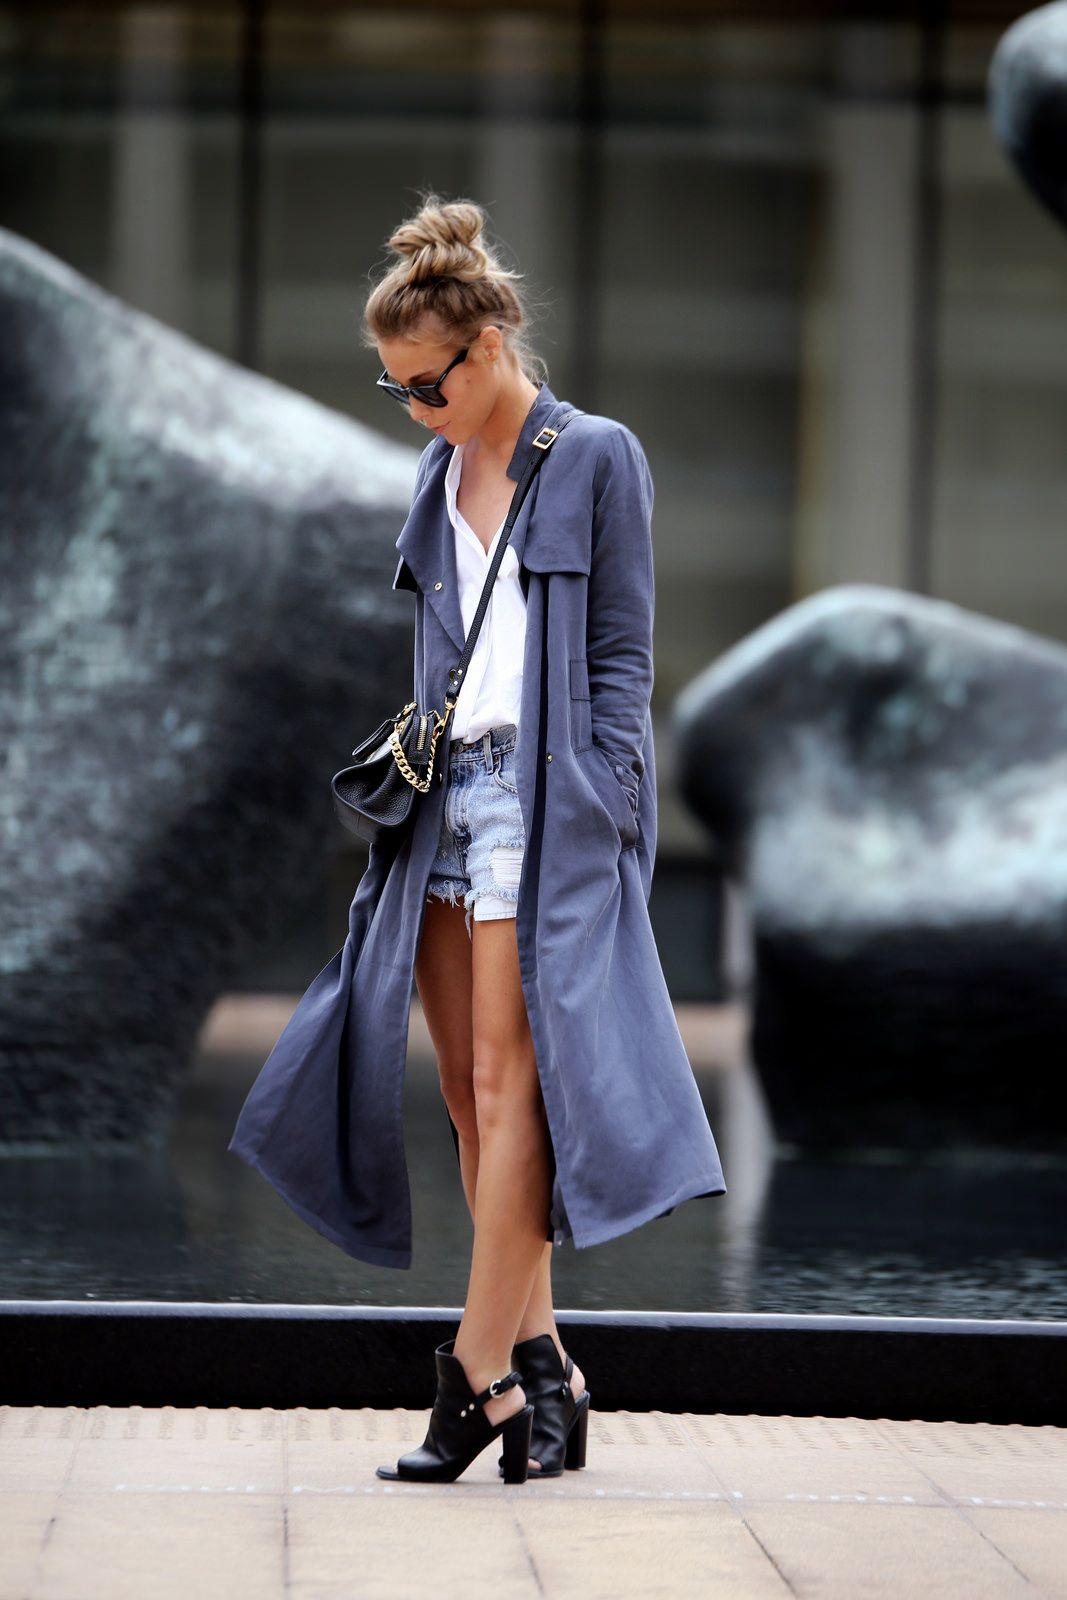 6931c71cf80267 // ILikeItThatWay | ・le swåg・ | Mode, Streetstyles und Outfit ideen